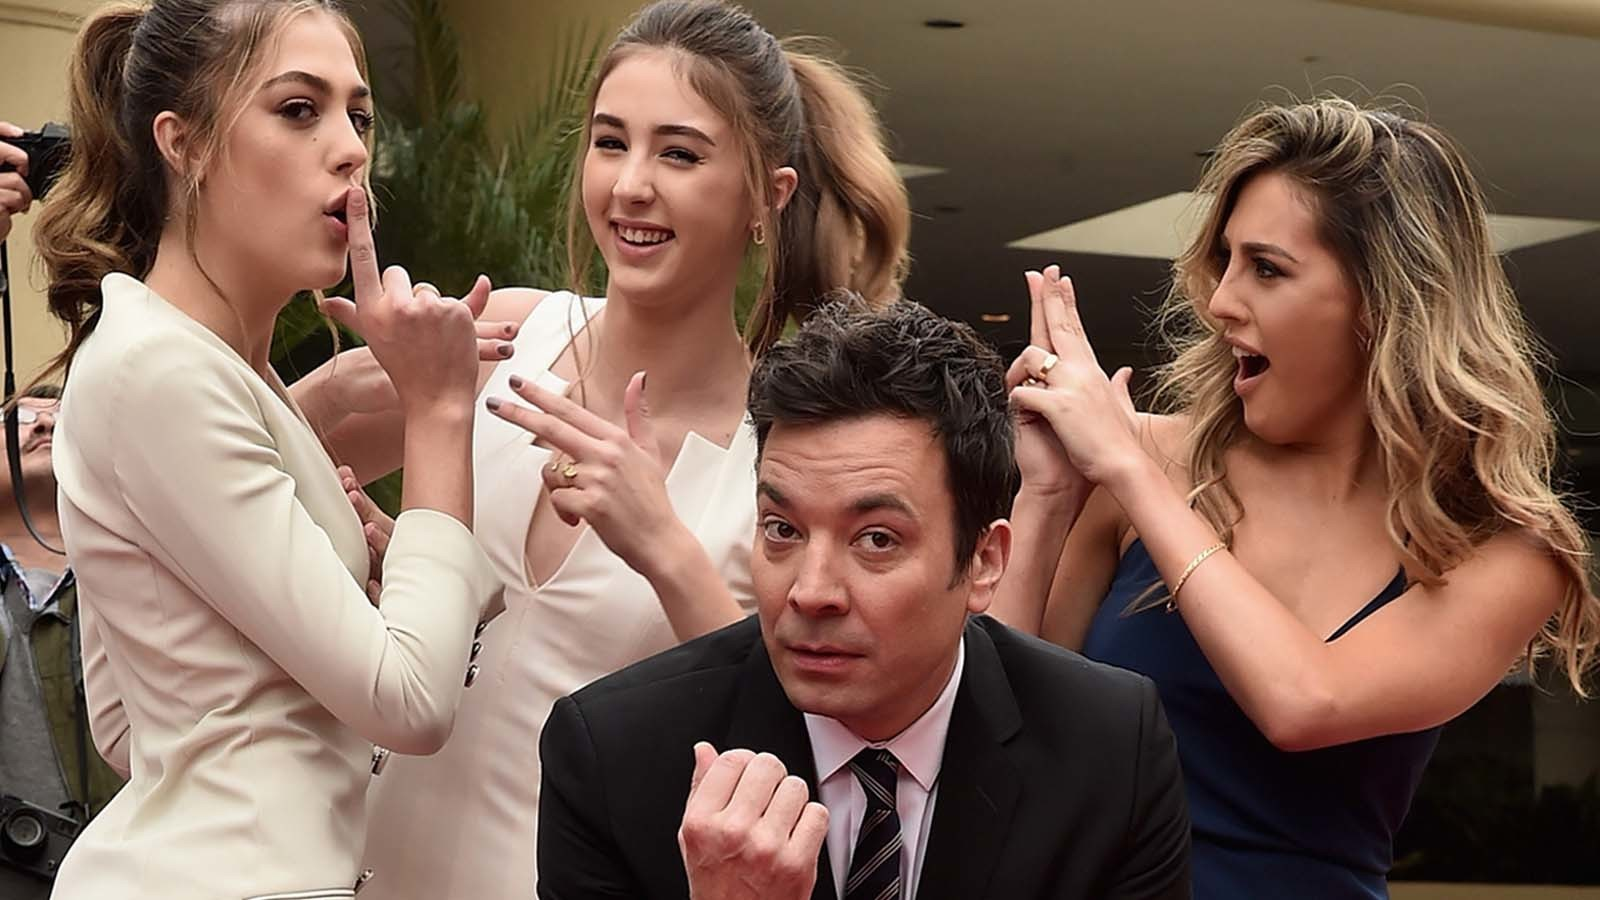 """From left, sisters Sistene, Scarlet and Sophia Stallone do their best """"Charlie's Angels"""" impersonations, with Jimmy Fallon as Bosley. (Alberto E. Rodriguez / Getty Images)"""